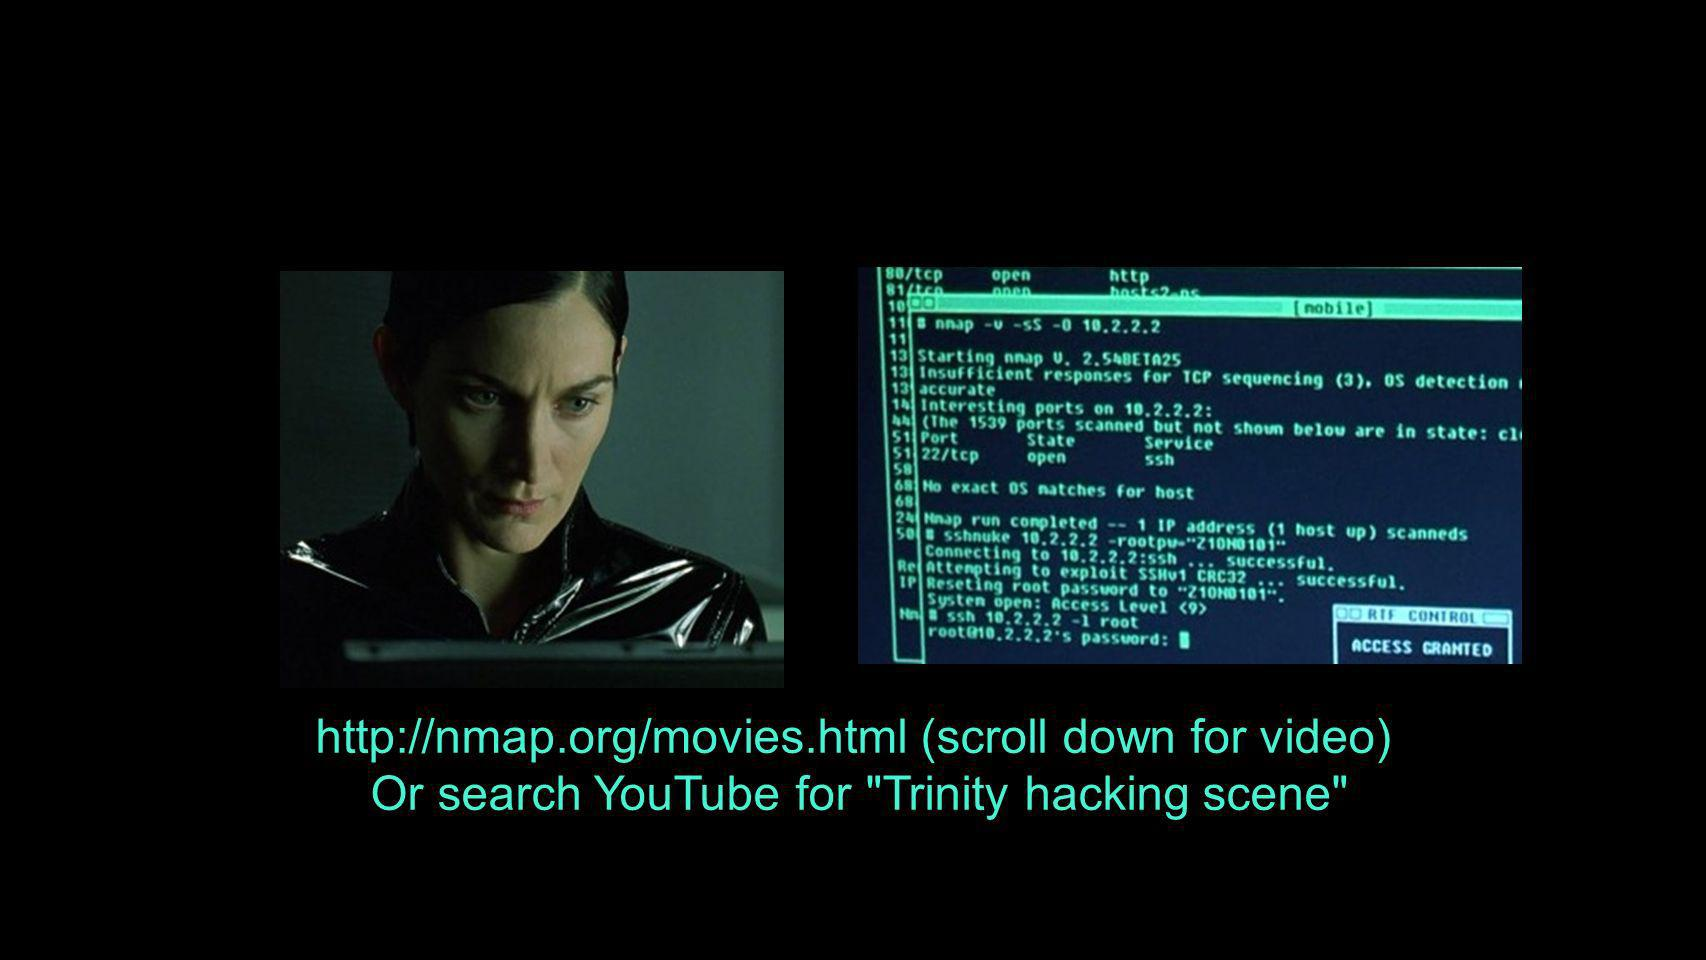 http://nmap.org/movies.html (scroll down for video)